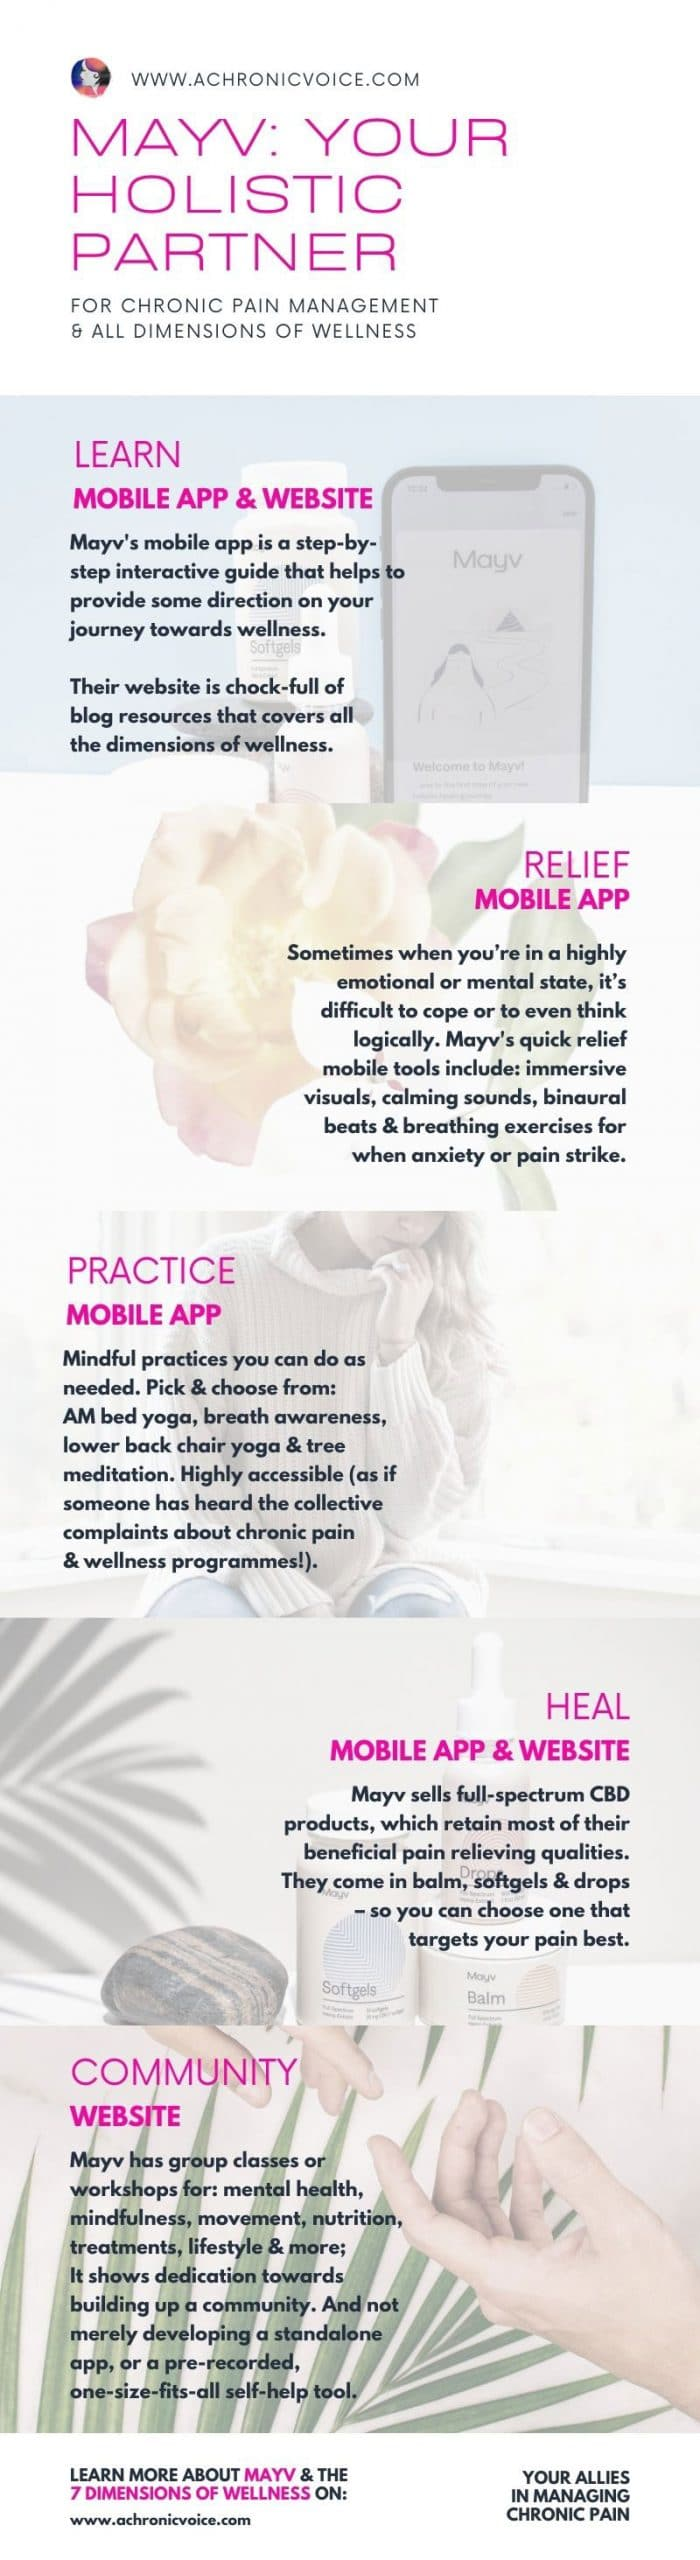 Mayv, Your Holistic Partner for Chronic Pain Management and All Dimensions of Wellness Infographic